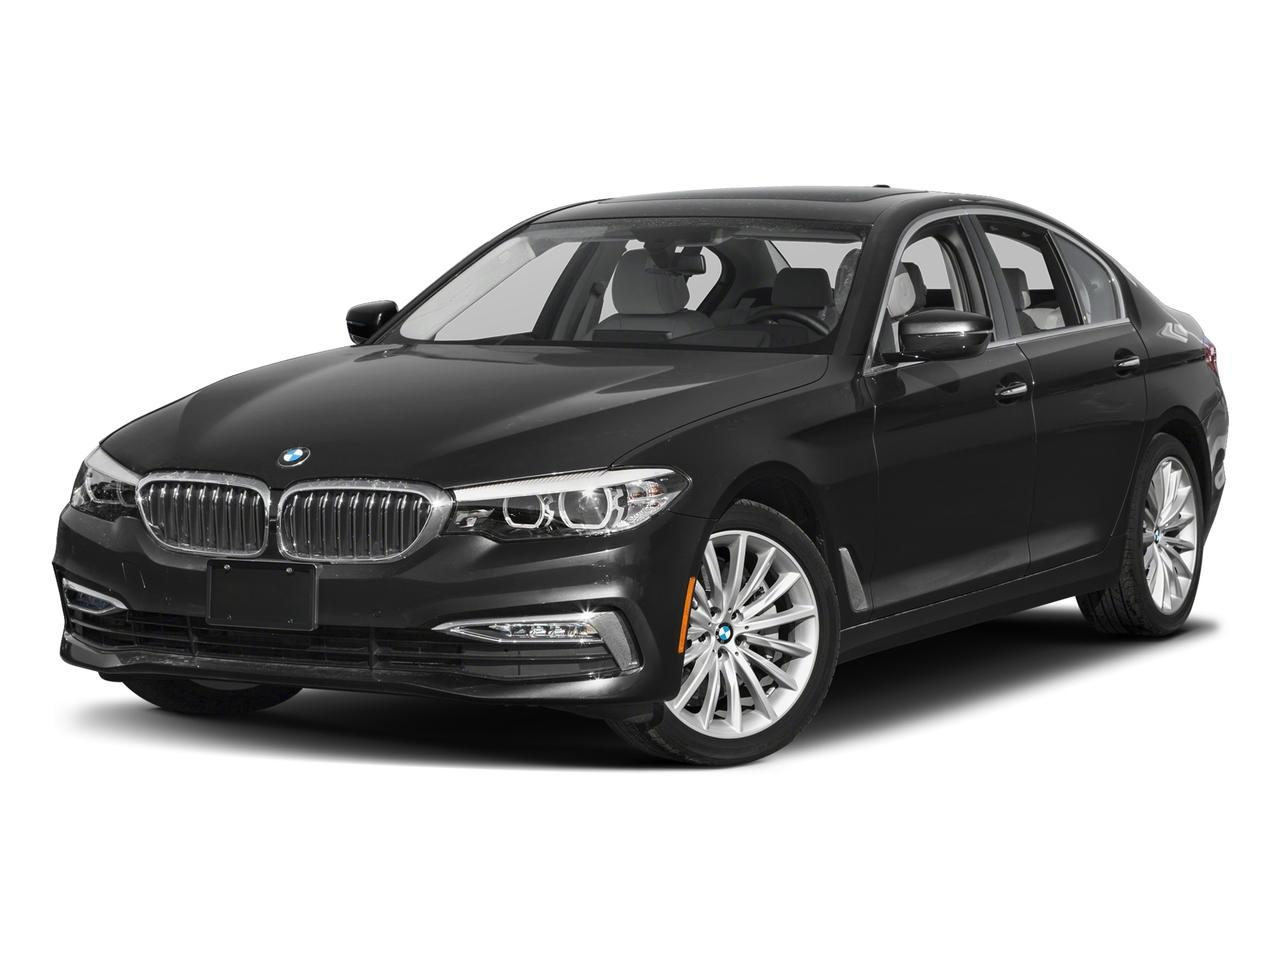 2017 BMW 530i Vehicle Photo in Tulsa, OK 74133